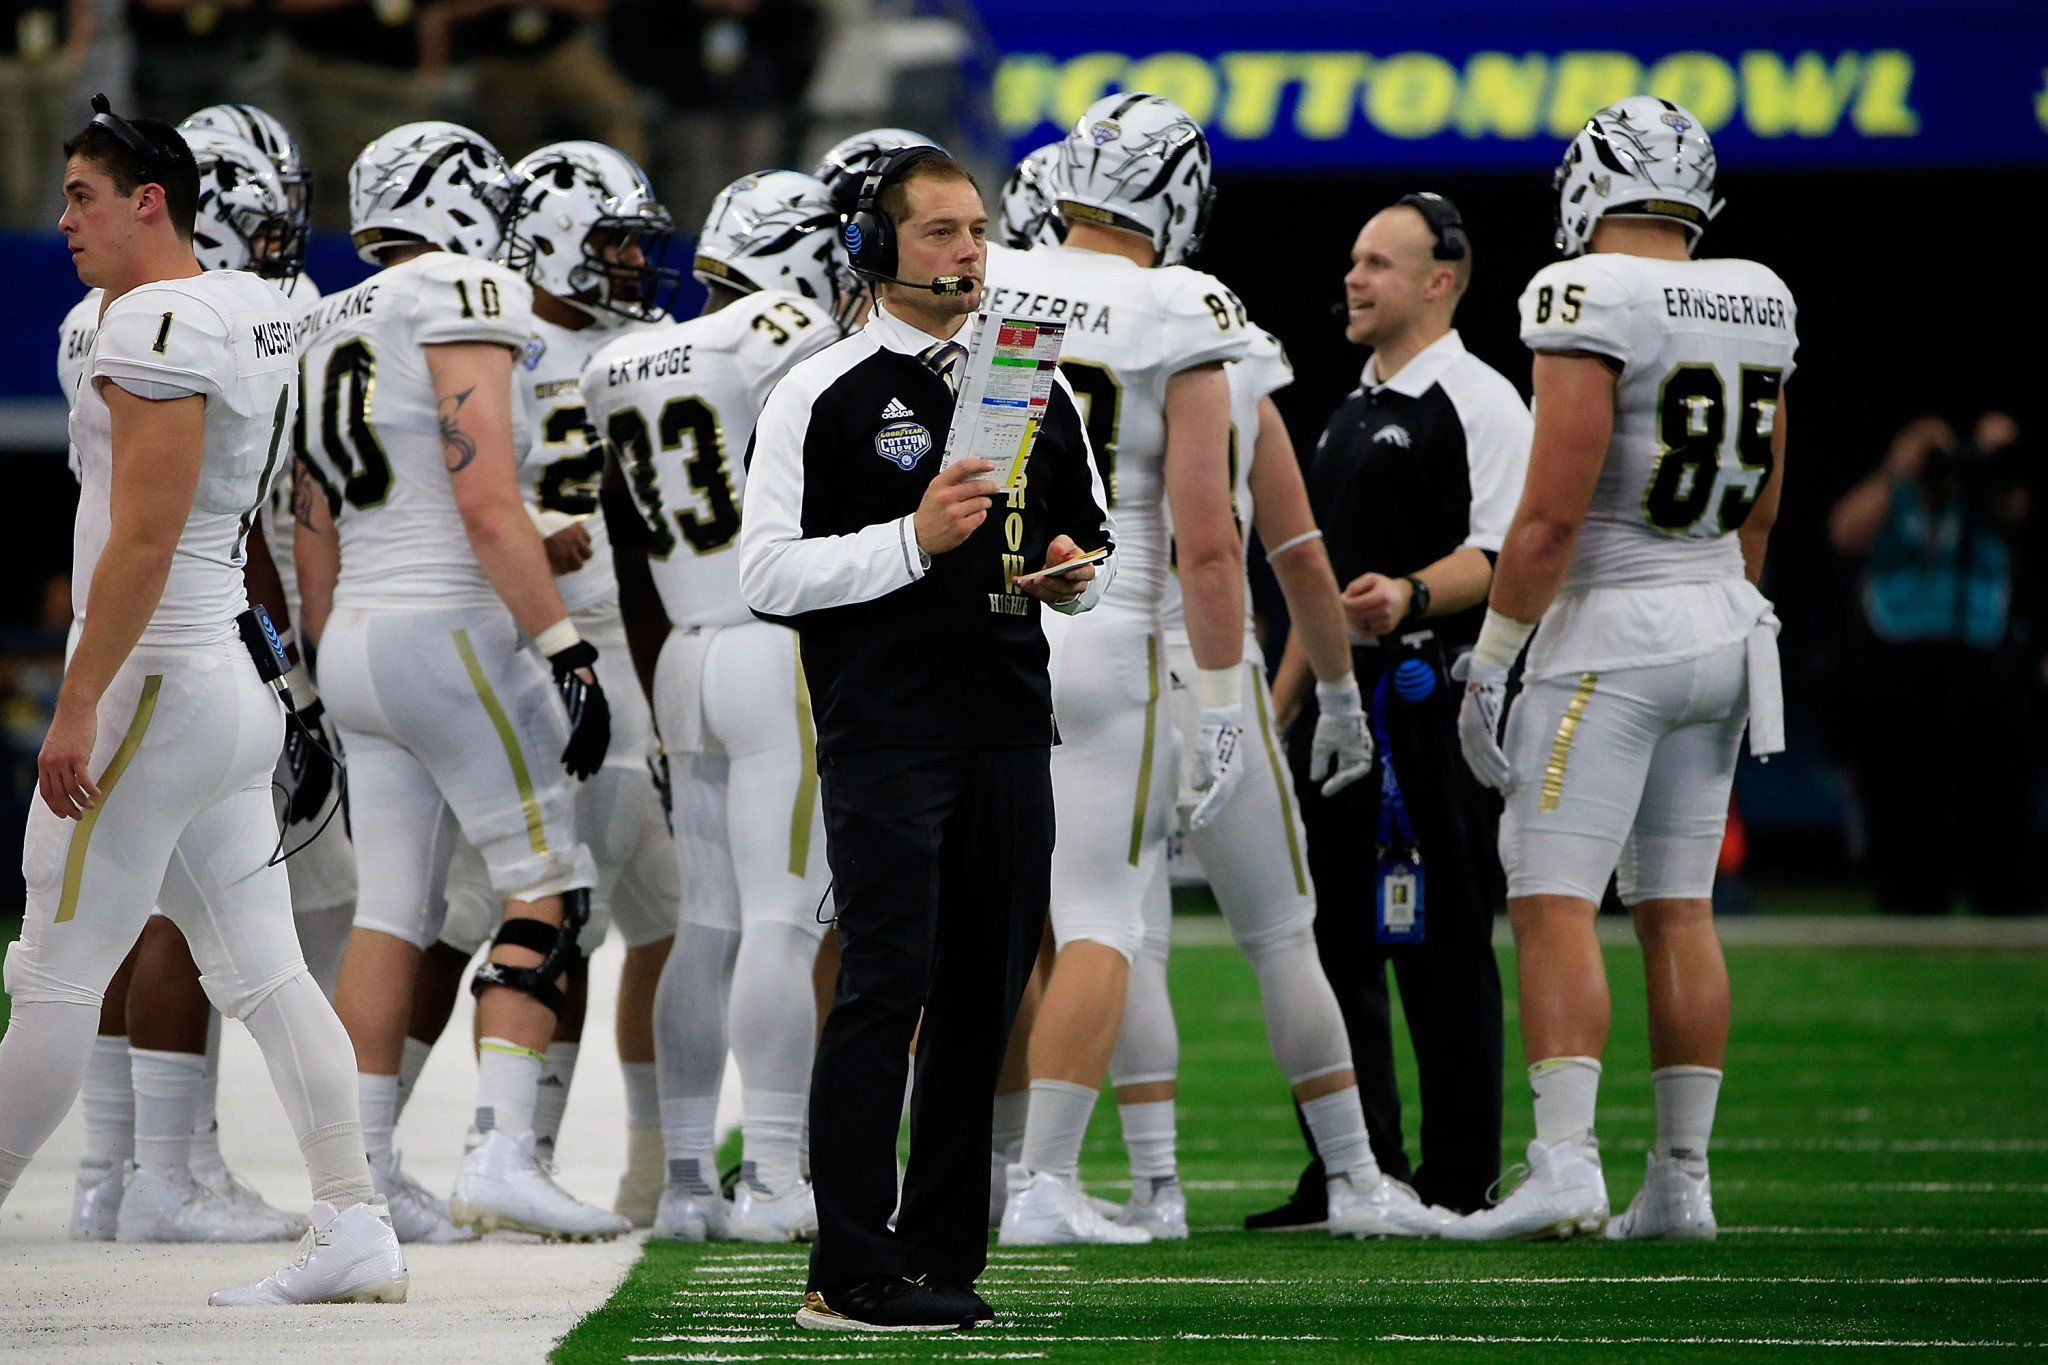 P.J. Fleck has gone 29-11 in three seasons after a 1-11 first season at WMU. (Getty)